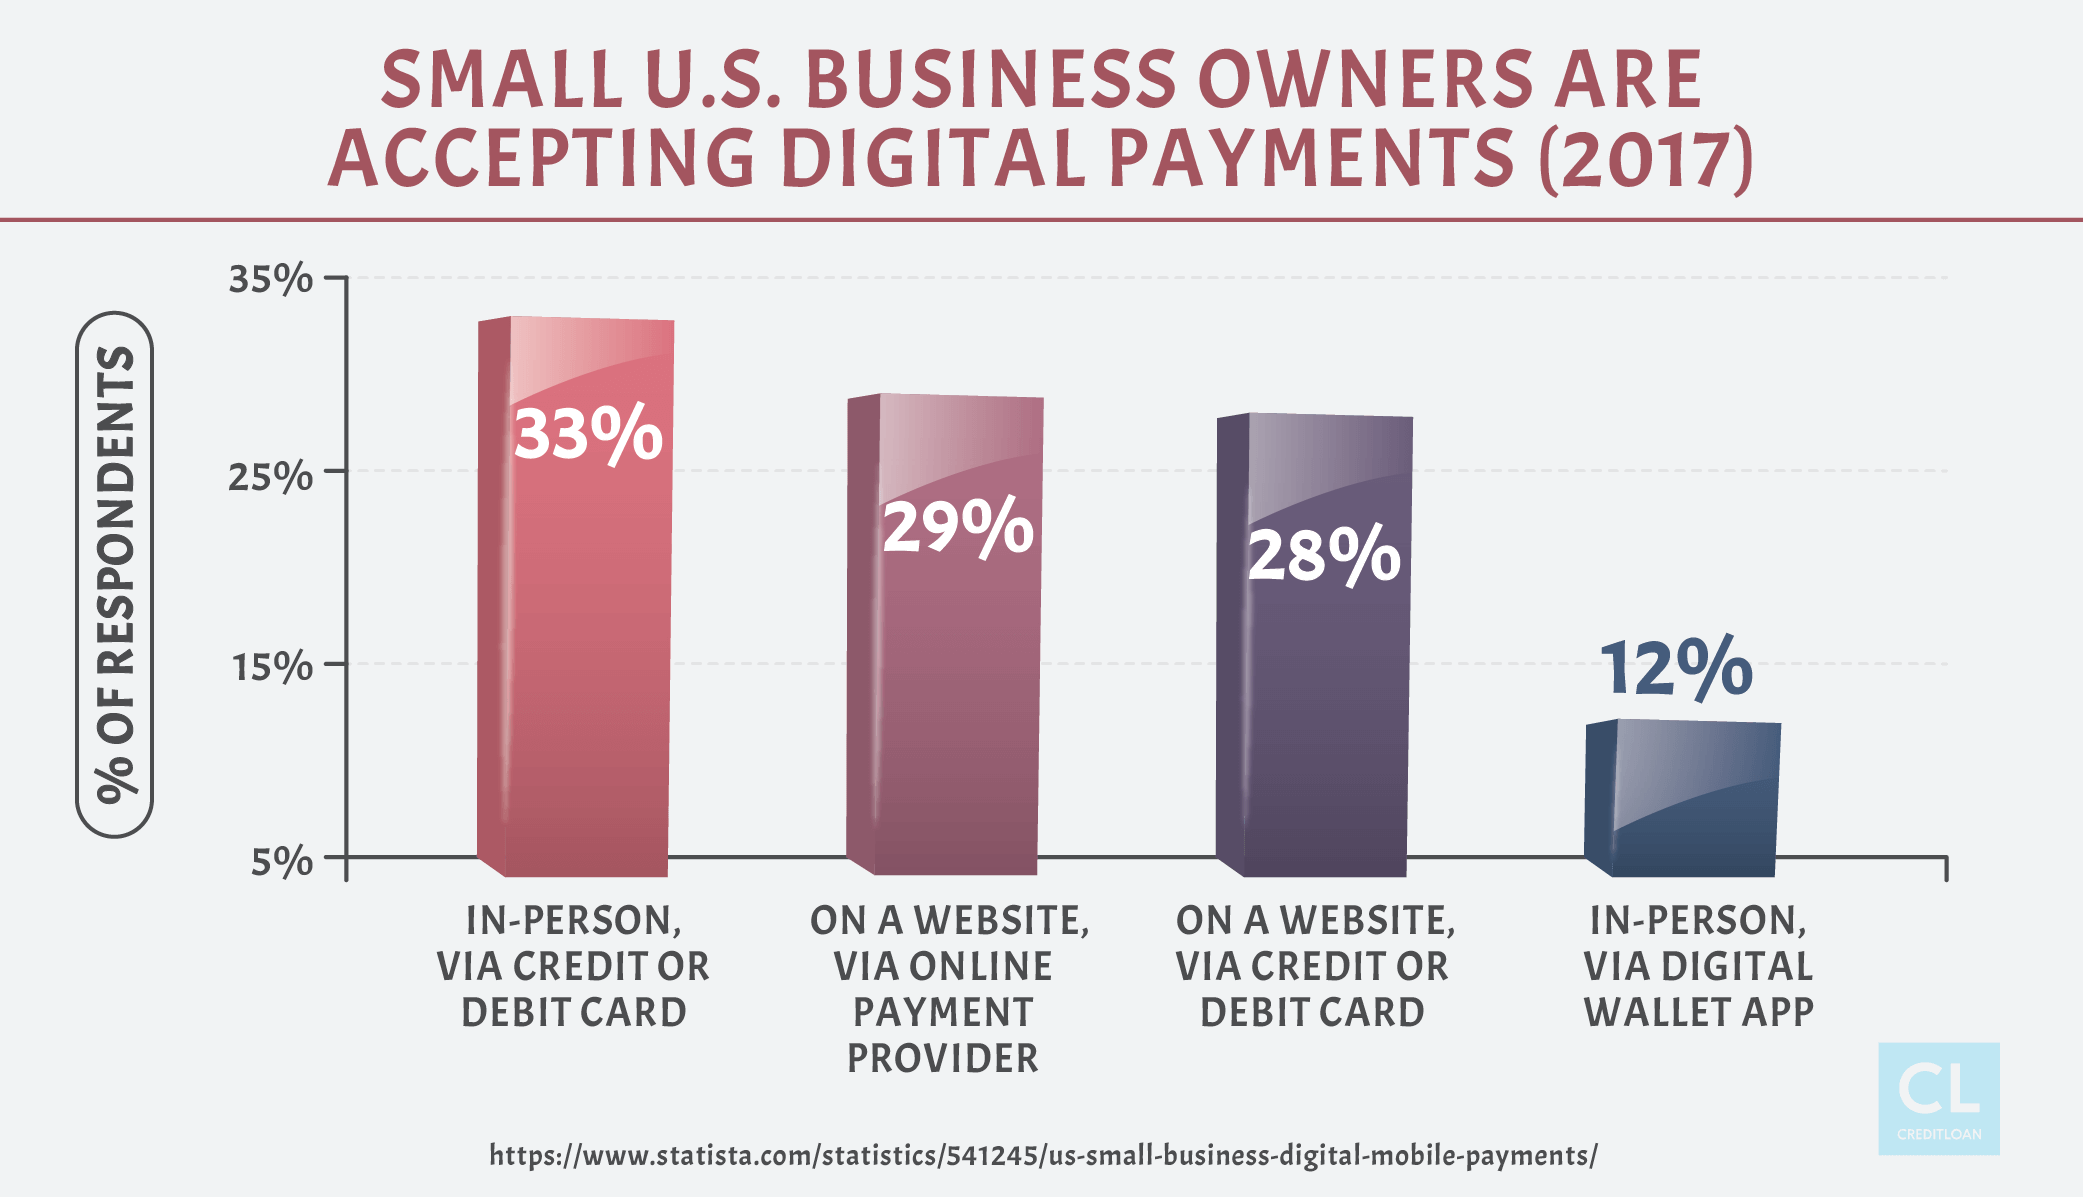 Small U.S. Business Owners Are Accepting Digital Payments